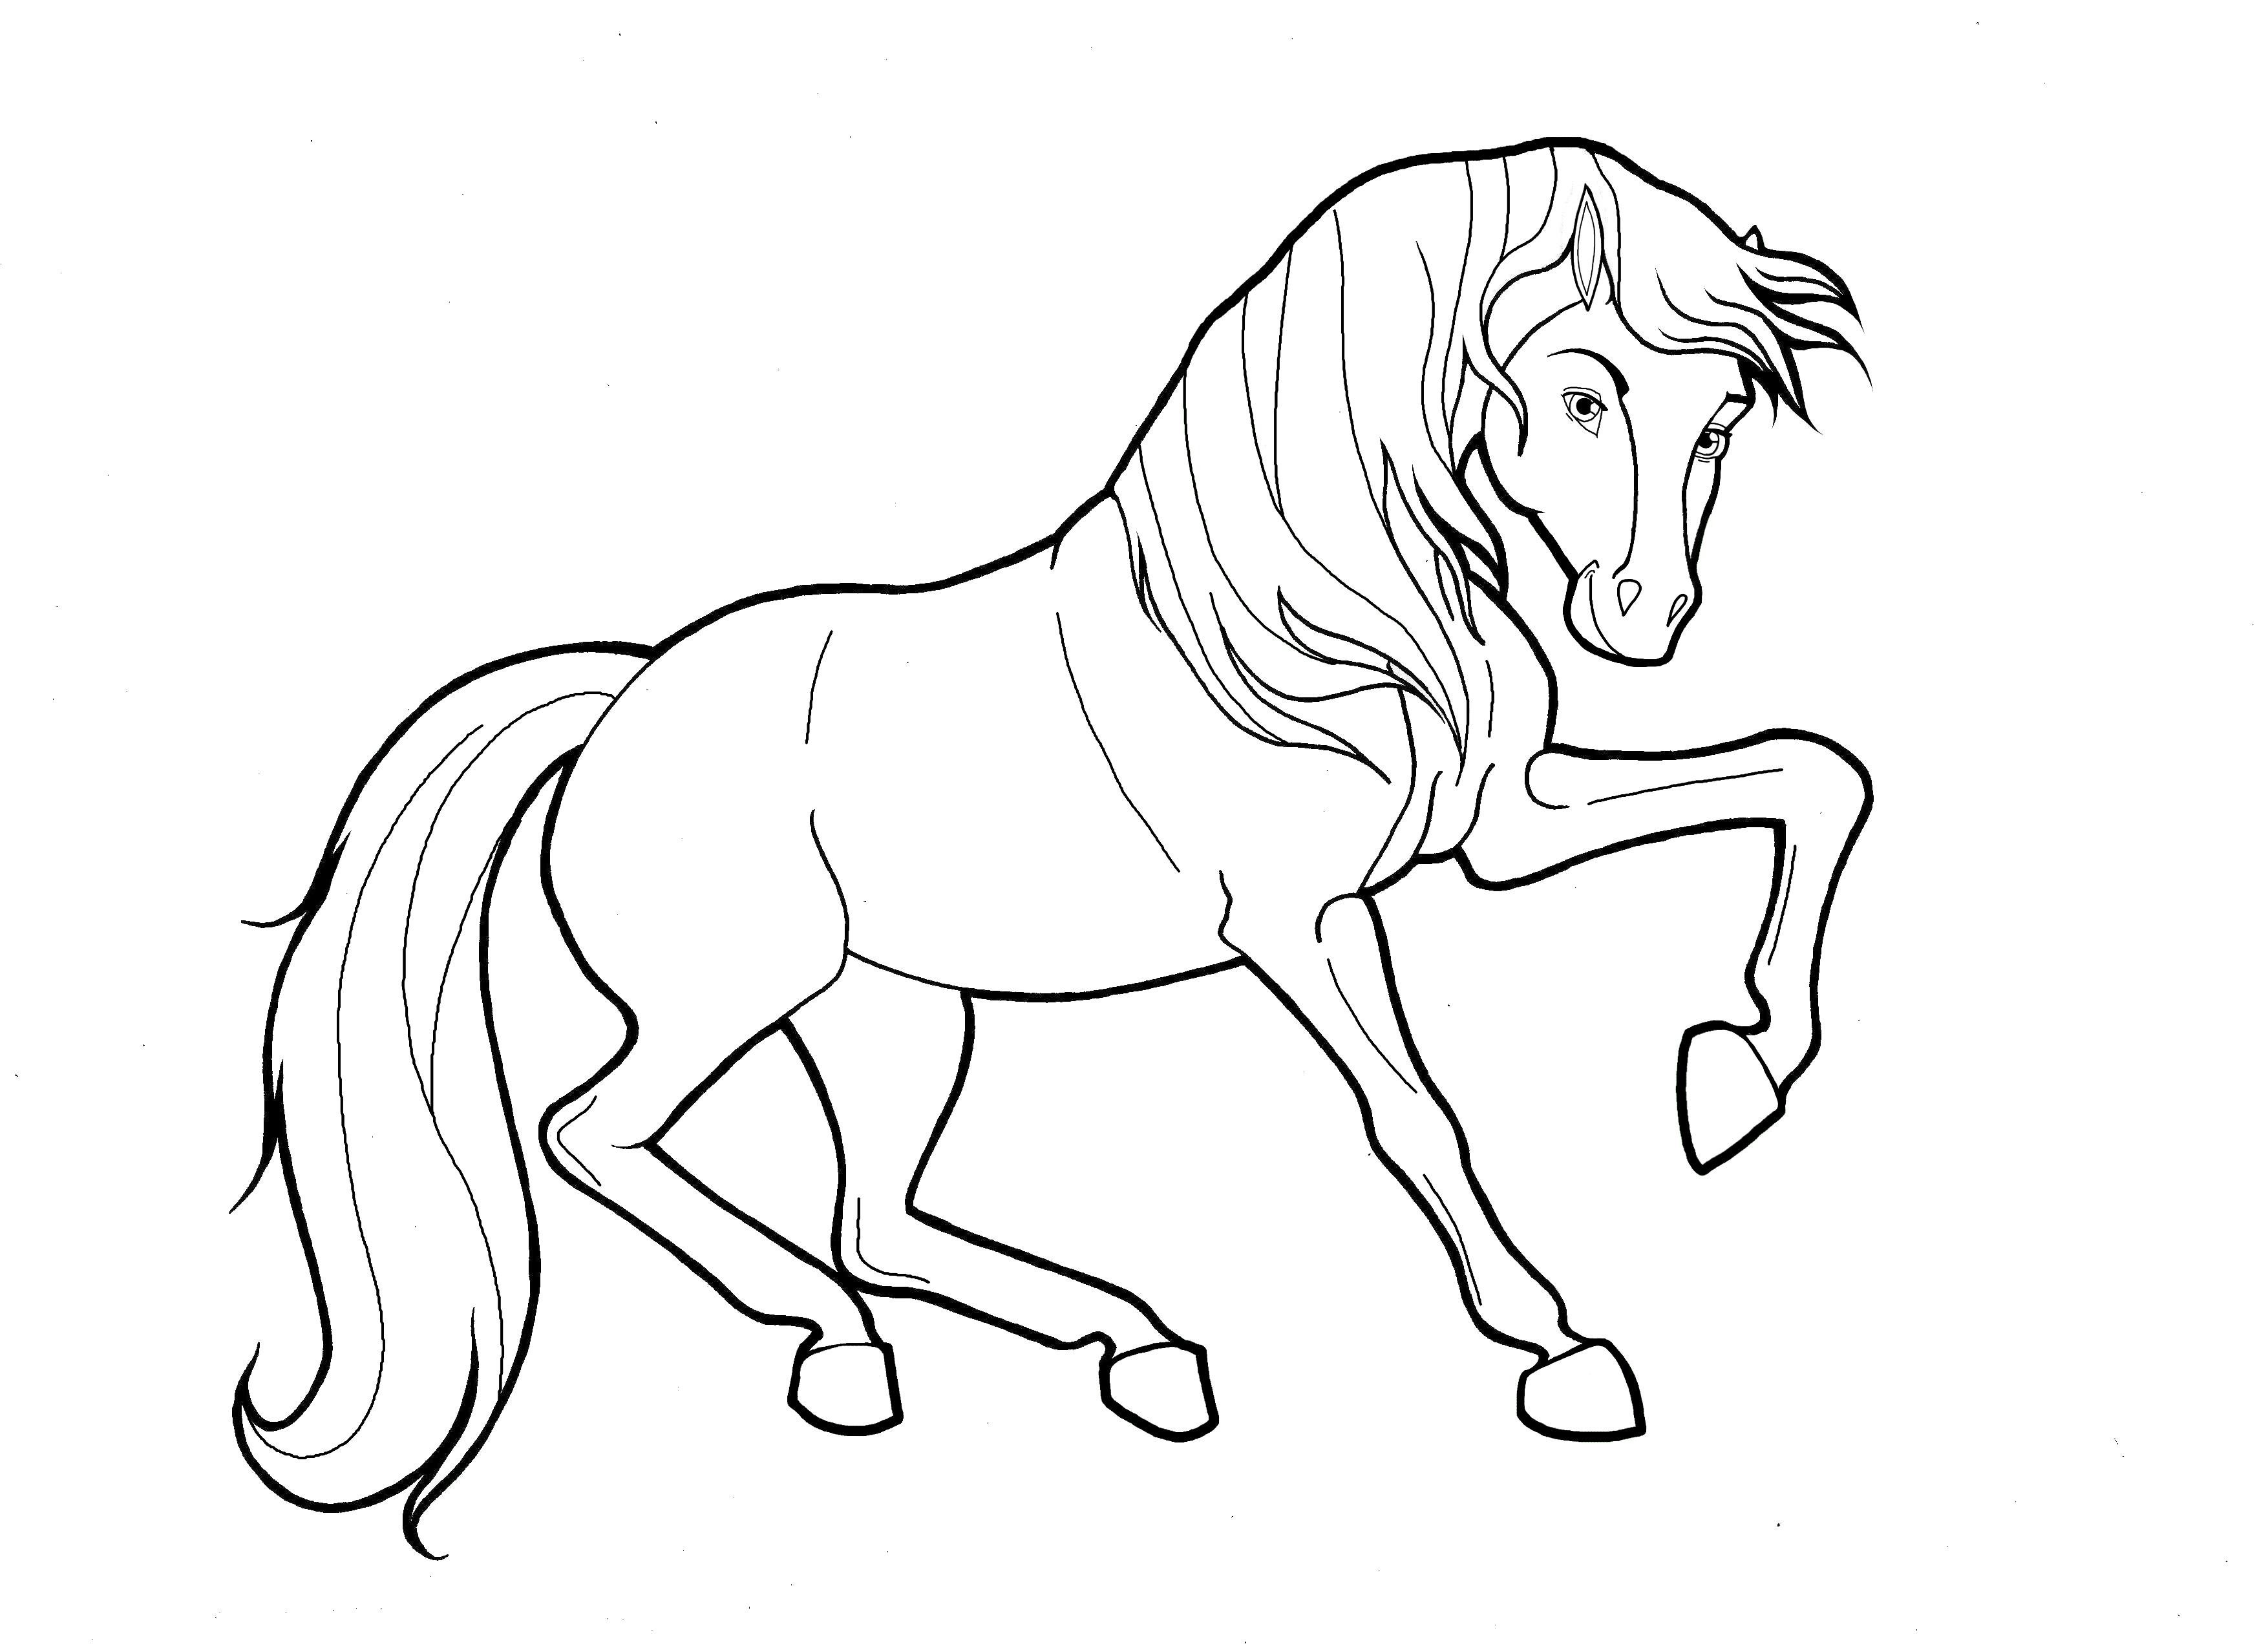 horse coloring pages for kids fun horse coloring pages for your kids printable for horse kids pages coloring